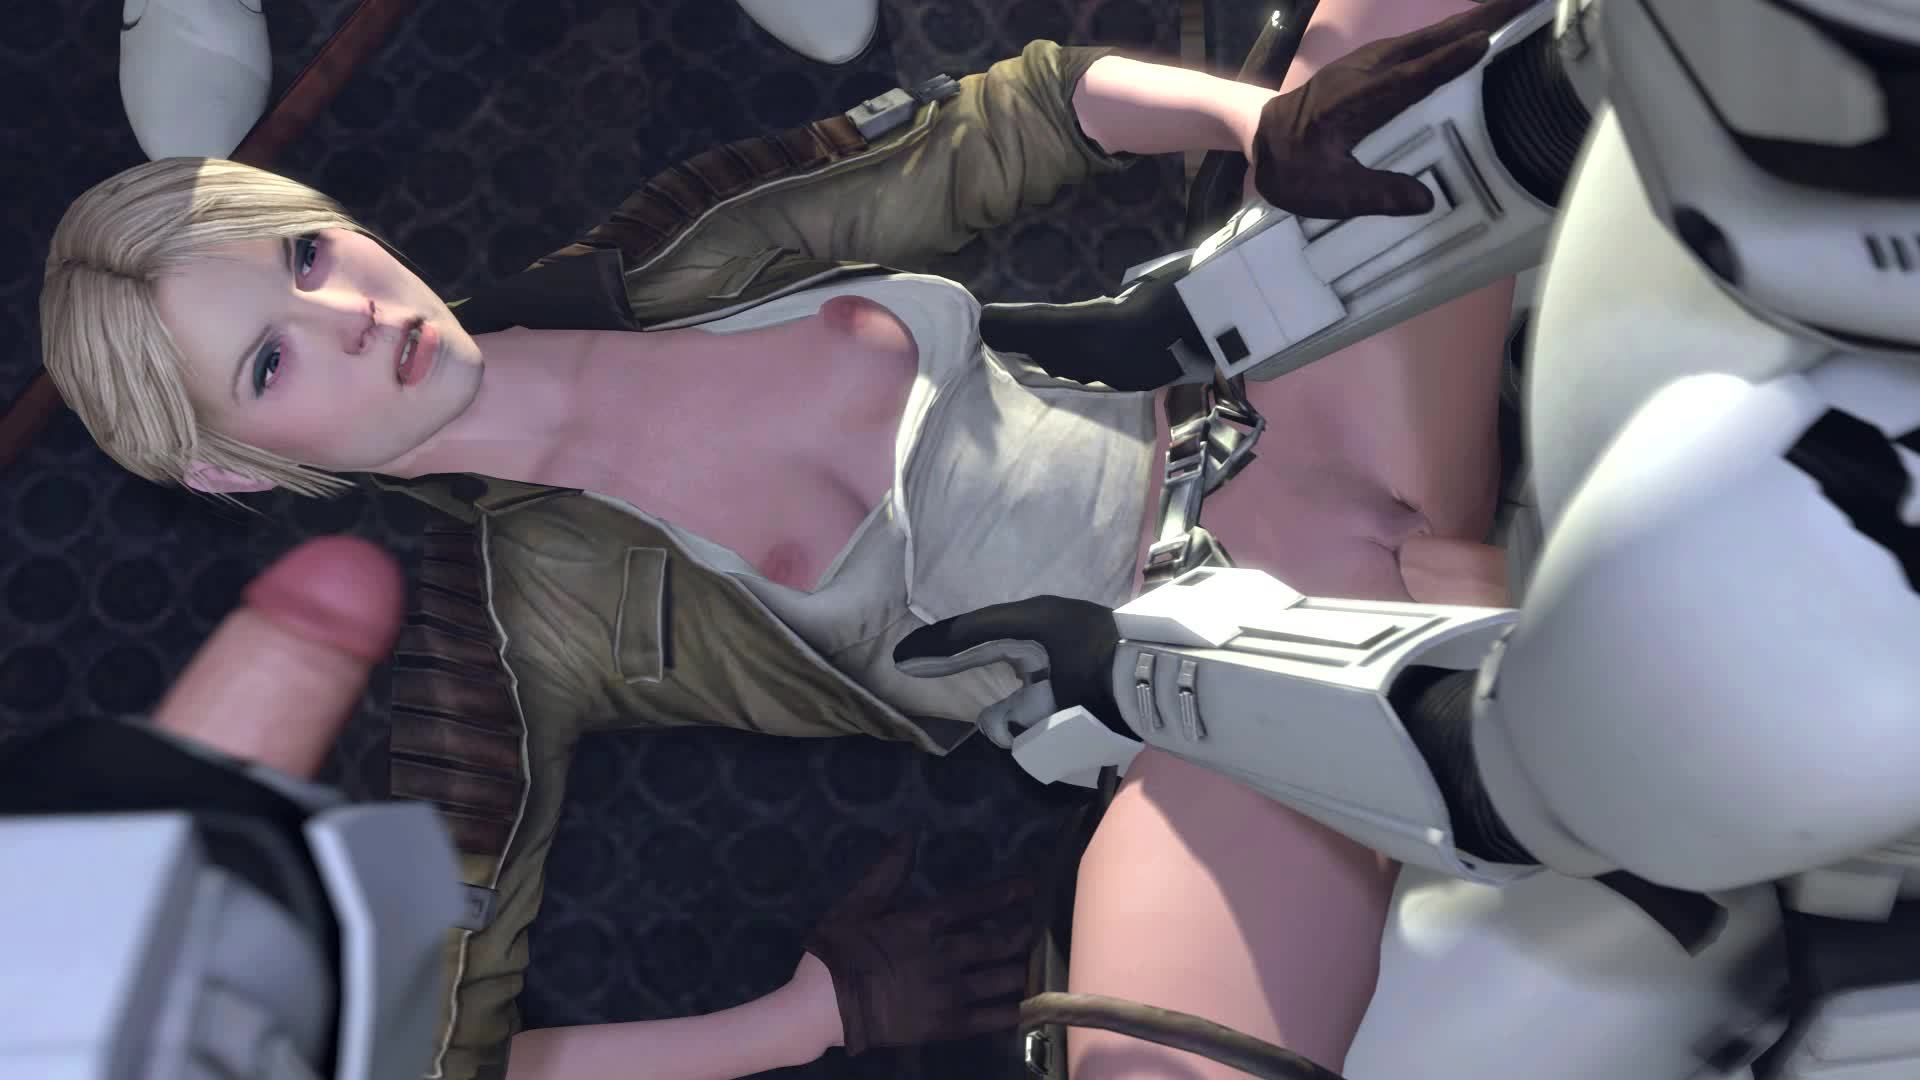 Star wars anime 3d porno naked bitch